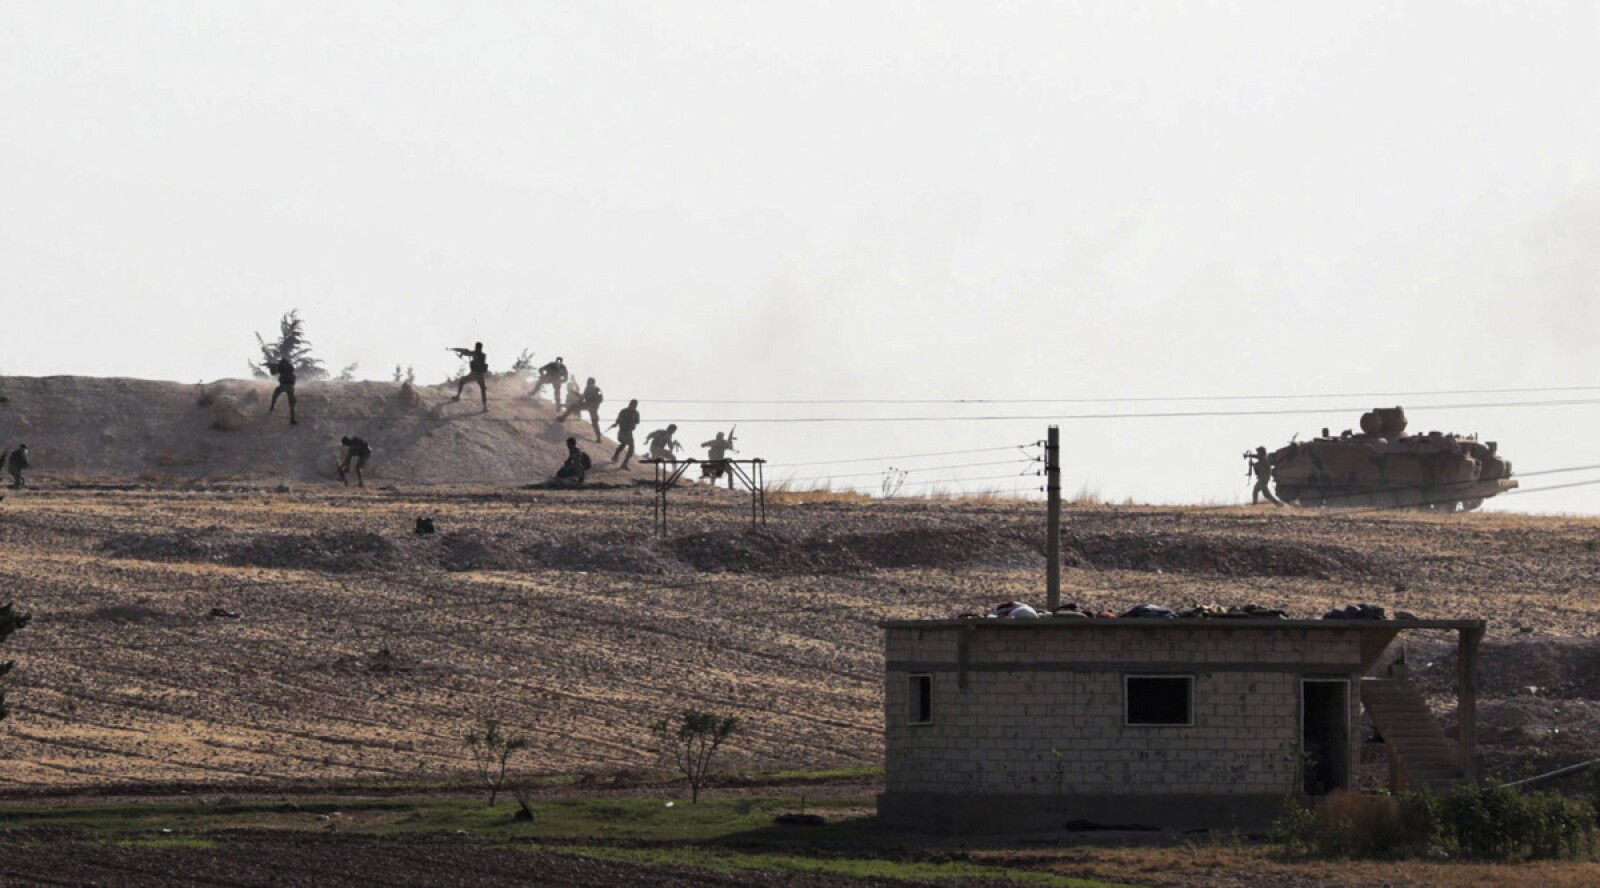 Turkey-backed Syrian rebel fighters are seen in action in the village of Yabisa, near the Turkish-Syrian border